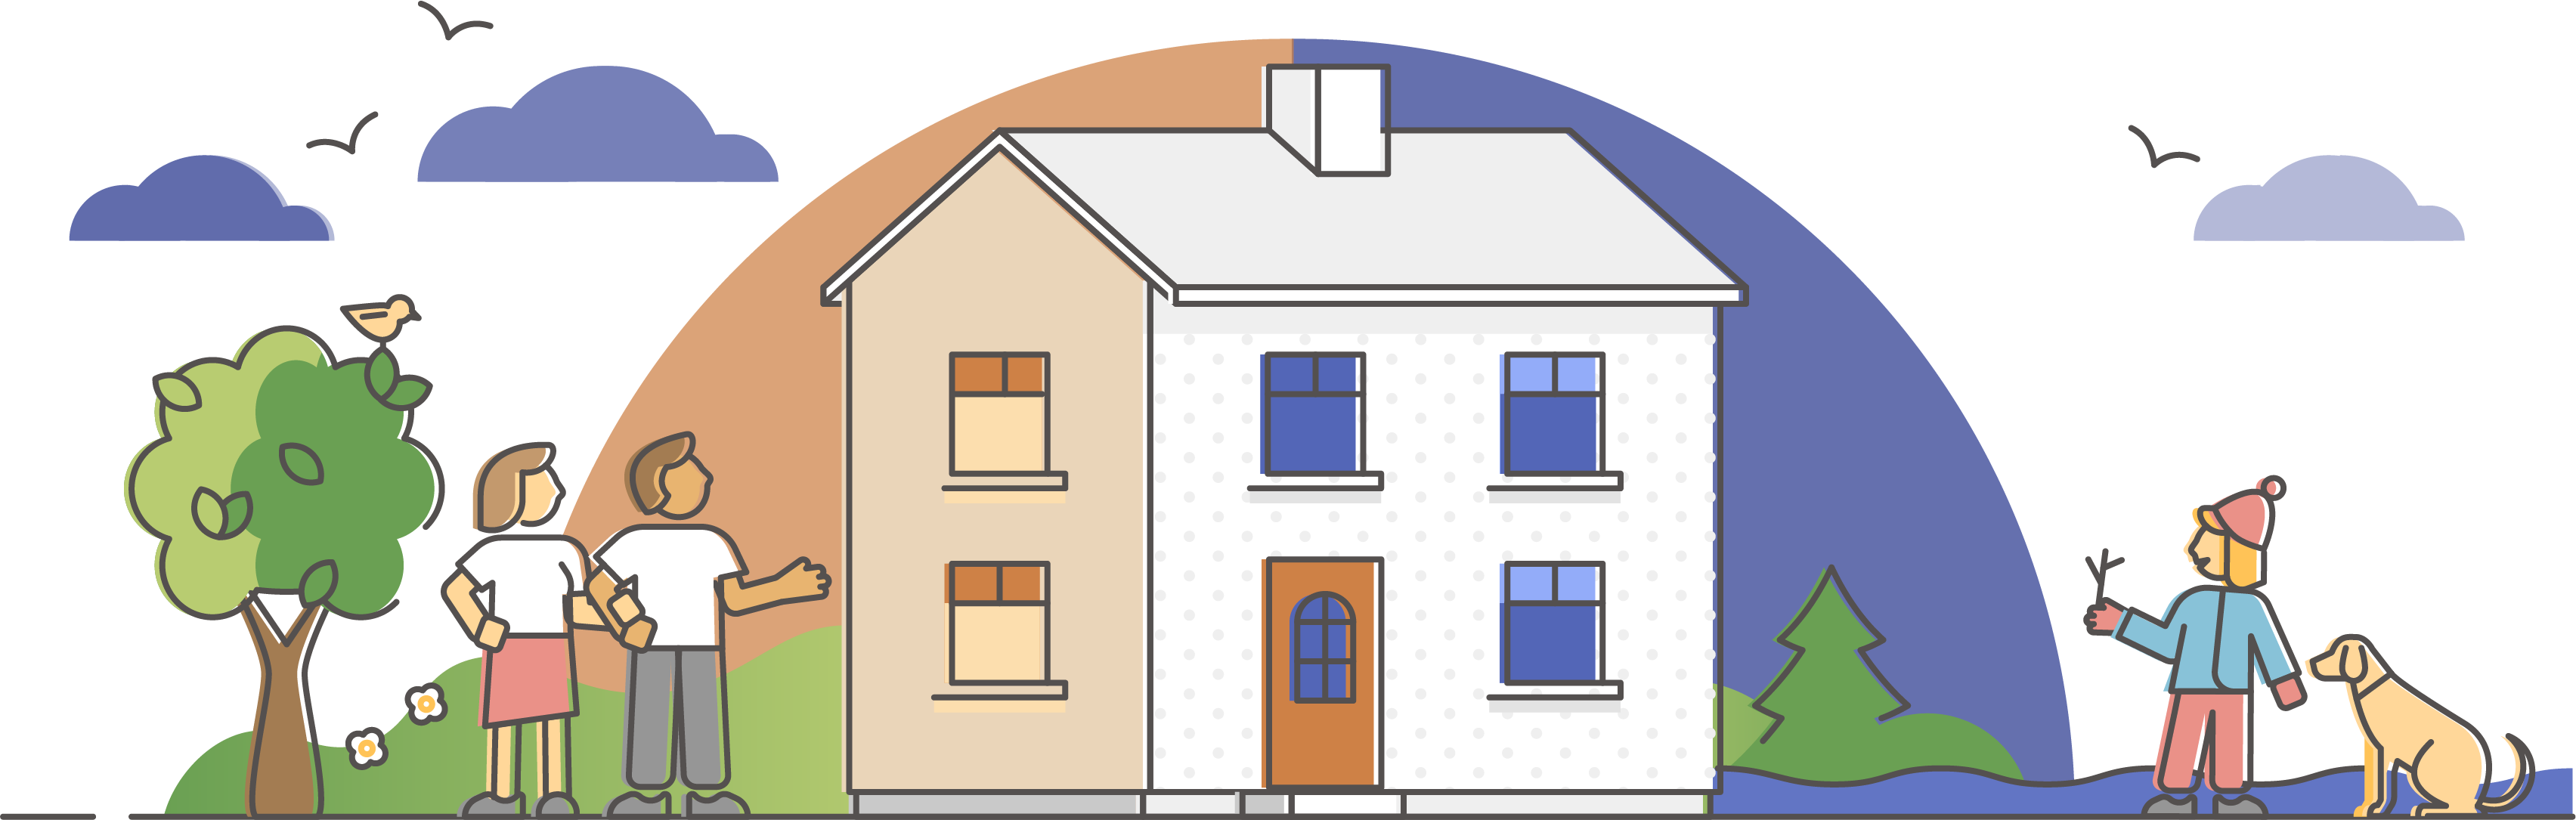 warm insulated house and people outside - illustration